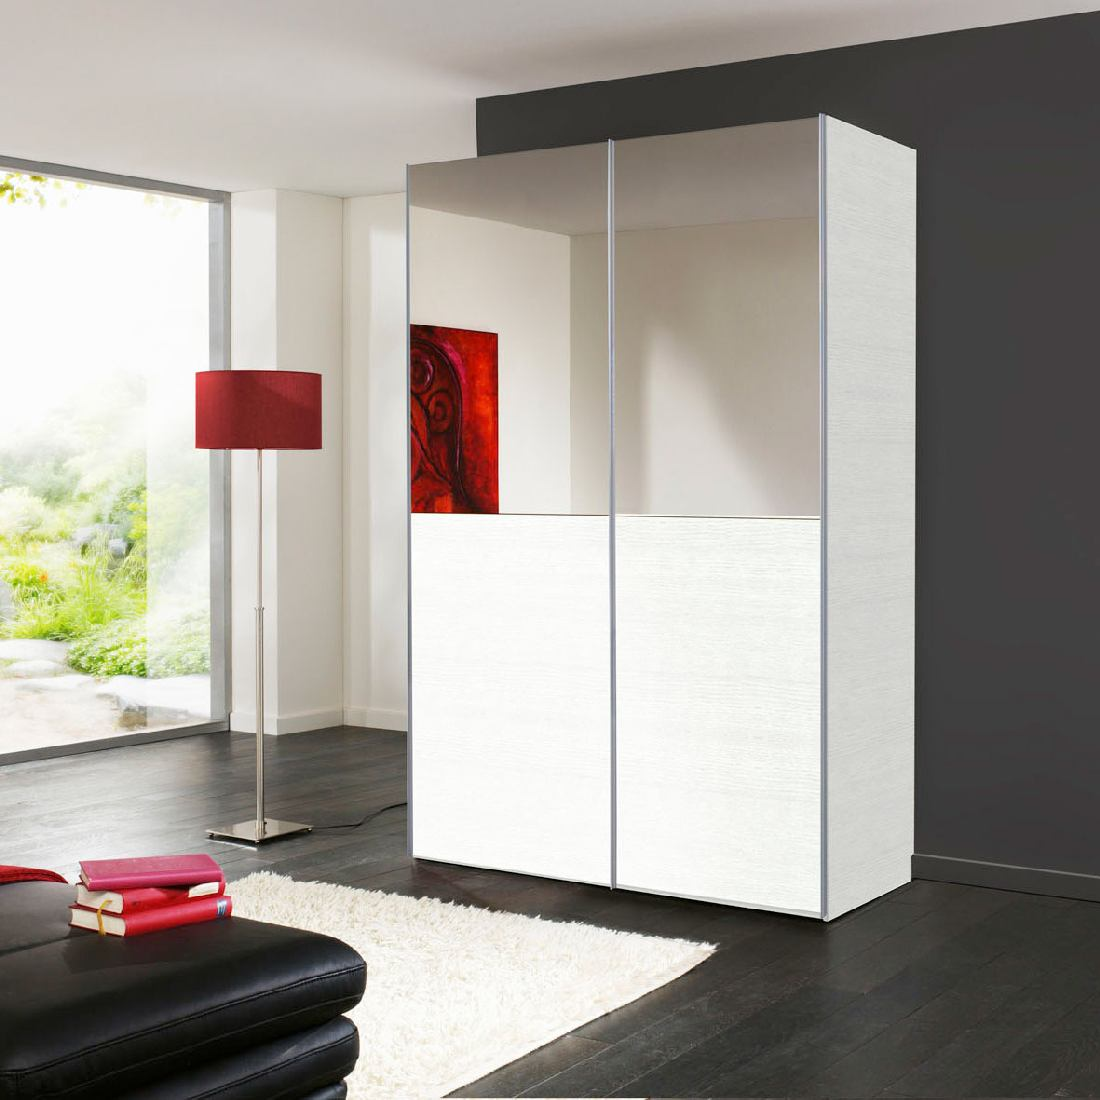 schwebet renschrank 2 t rig spiegel struktur wei kleiderschrank schrank neu ebay. Black Bedroom Furniture Sets. Home Design Ideas